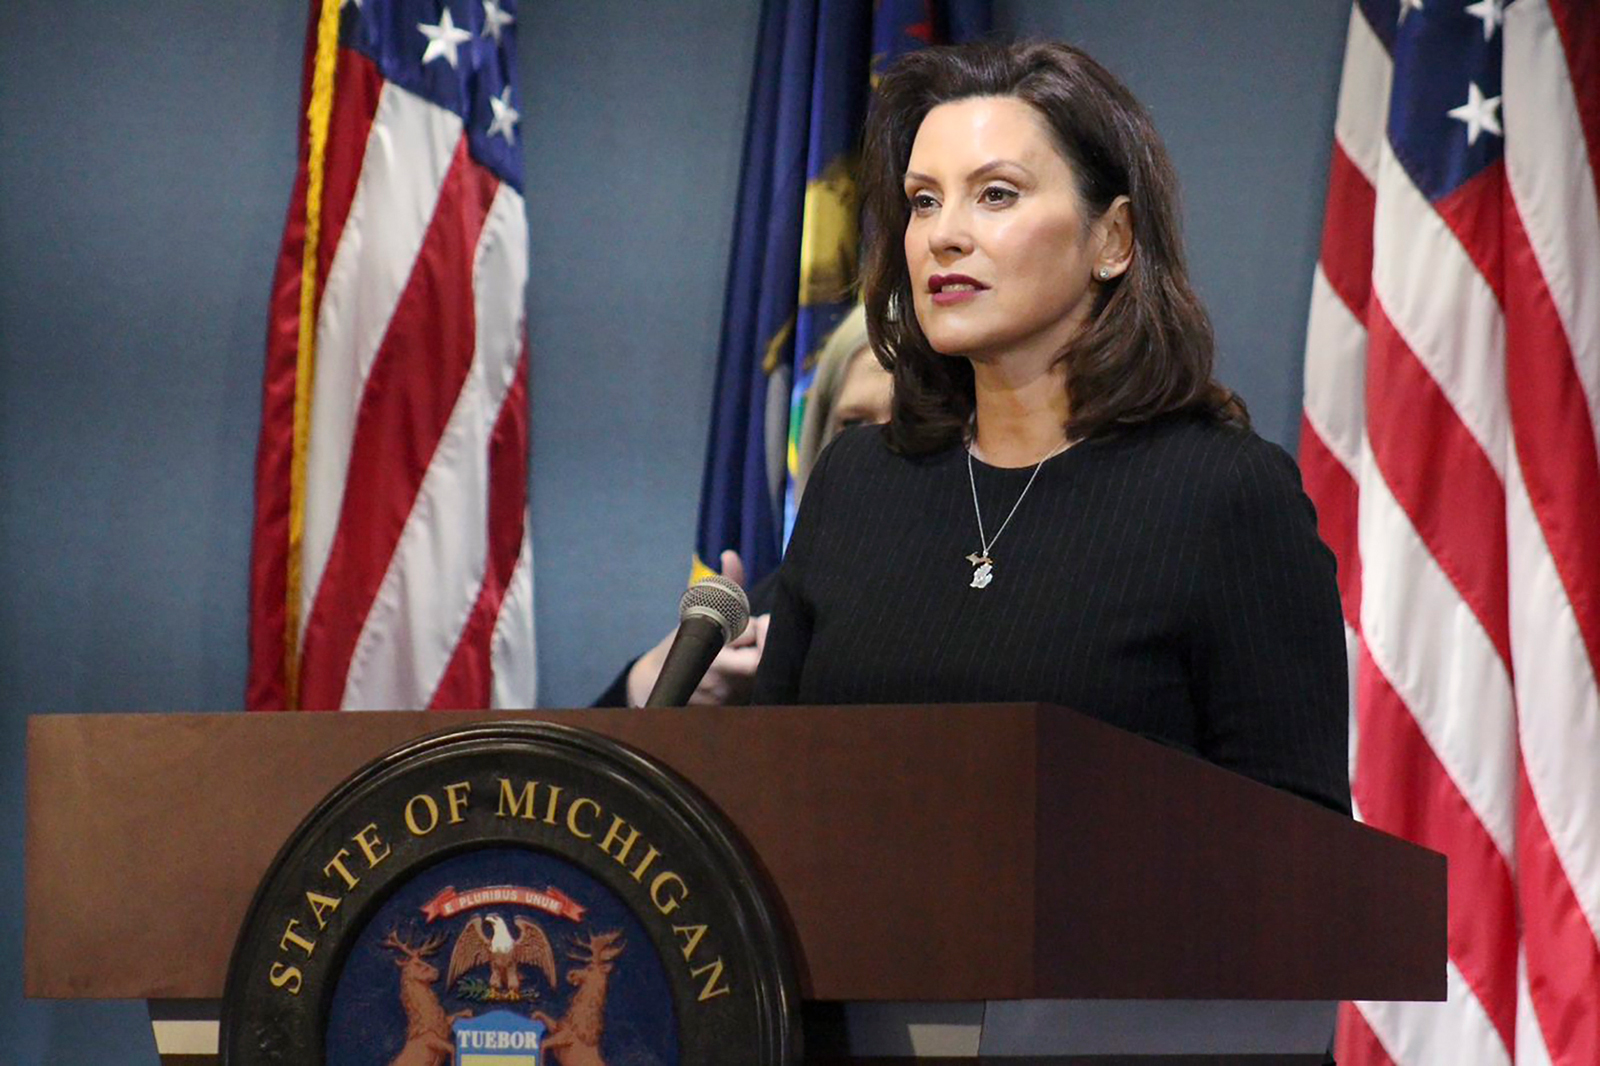 Gov. Gretchen Whitmer addresses the state during a speech in Lansing, Michigan on April 29.